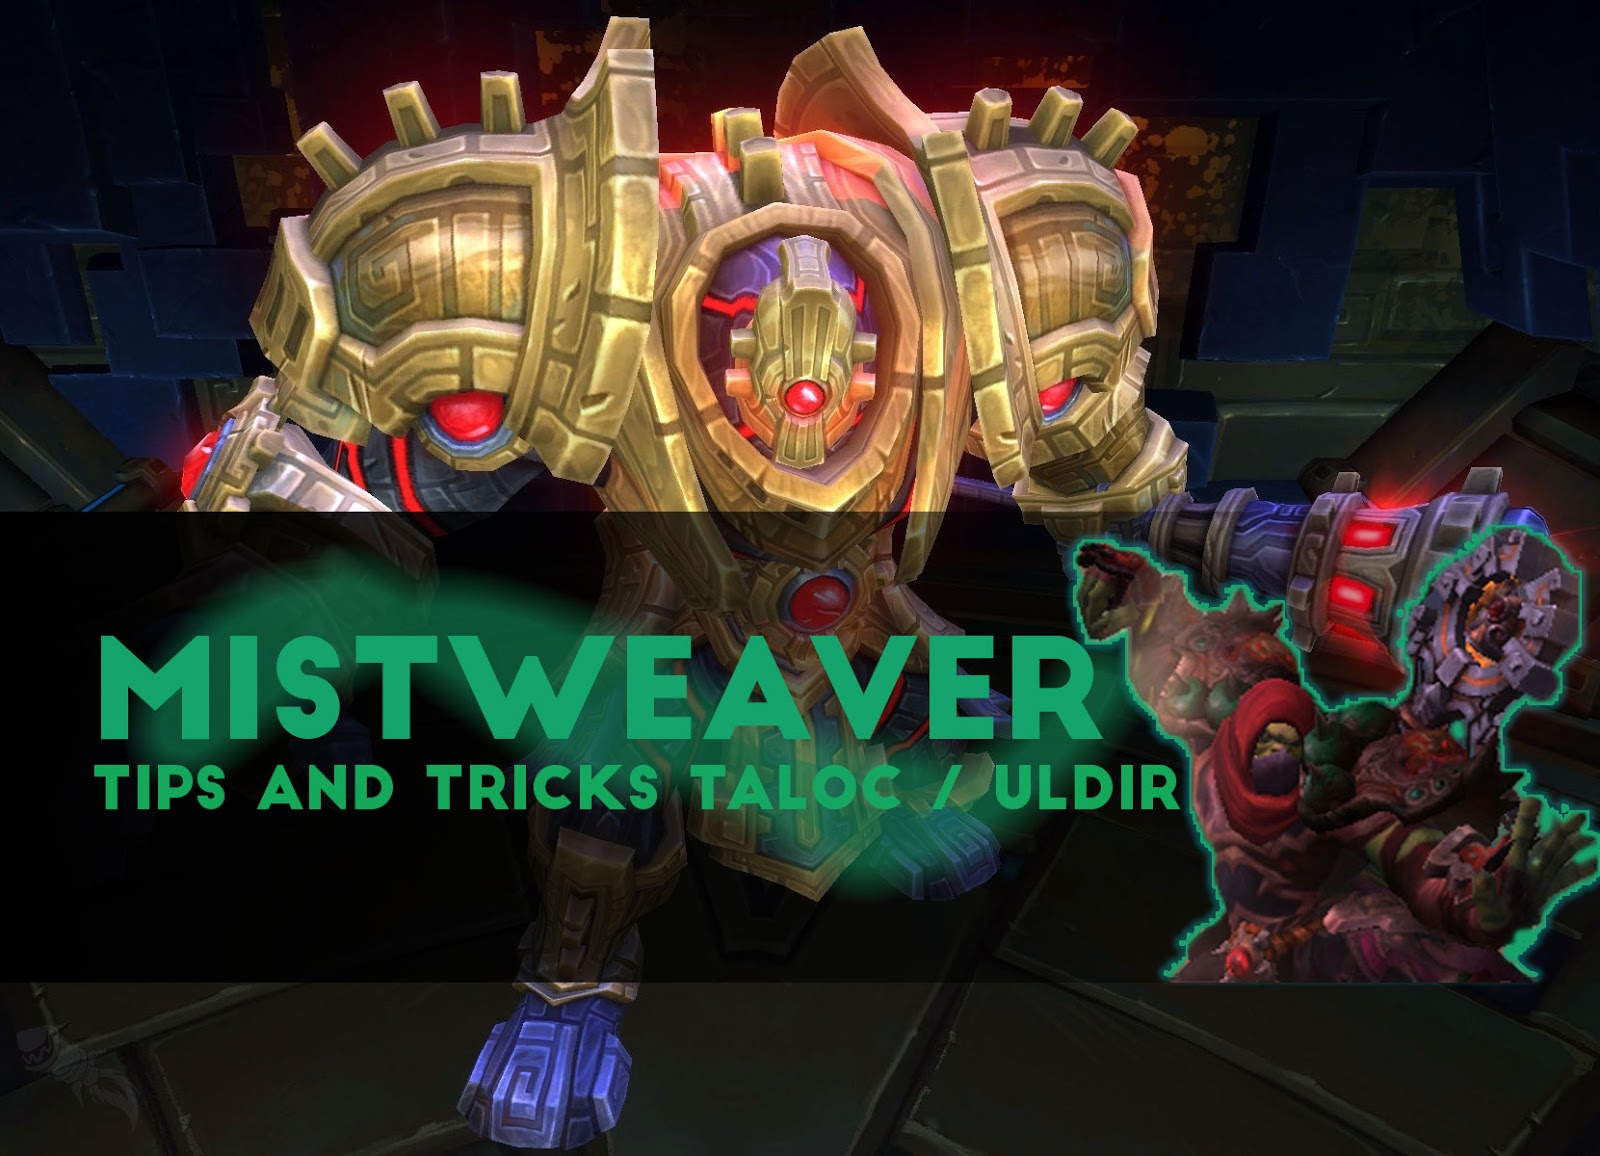 Mistweaver Tips And Tricks Taloc Uldir Patch 8 0 If you find yourself short of the cash needed to buy expensive gems then you. spyker gaming blogger